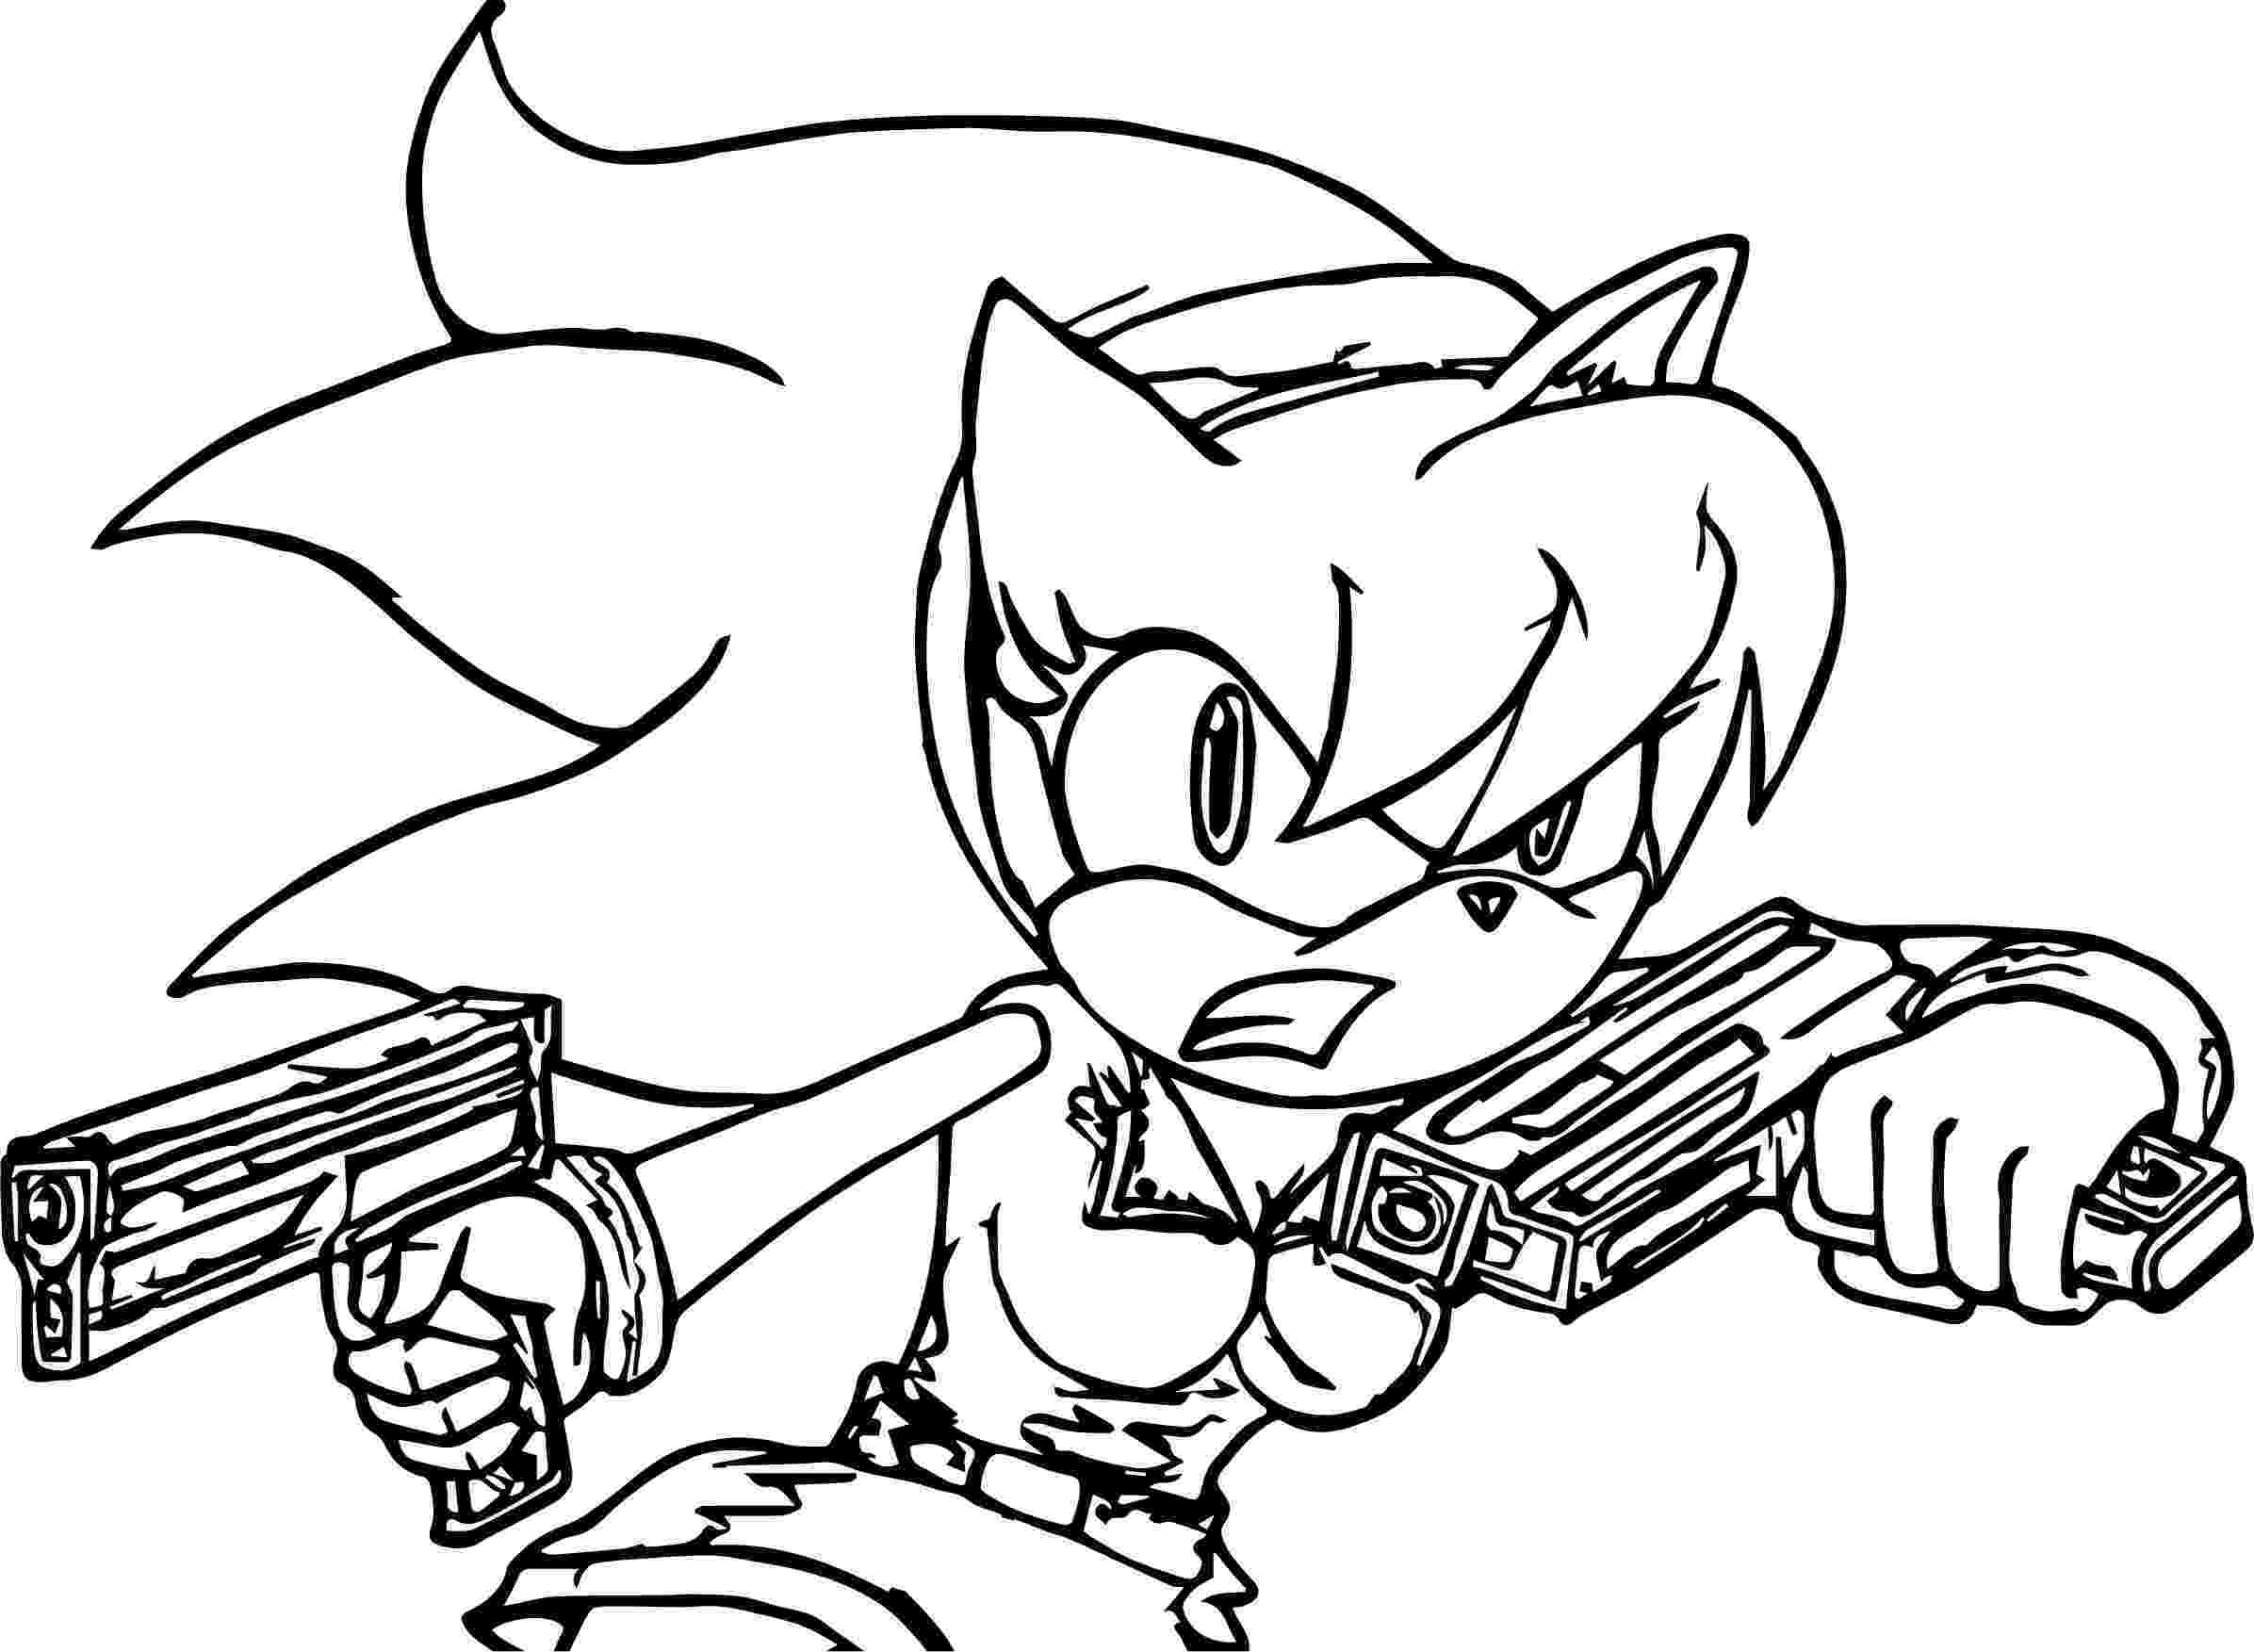 sonic amy coloring pages sonic coloring pages free printable pictures coloring pages coloring sonic amy